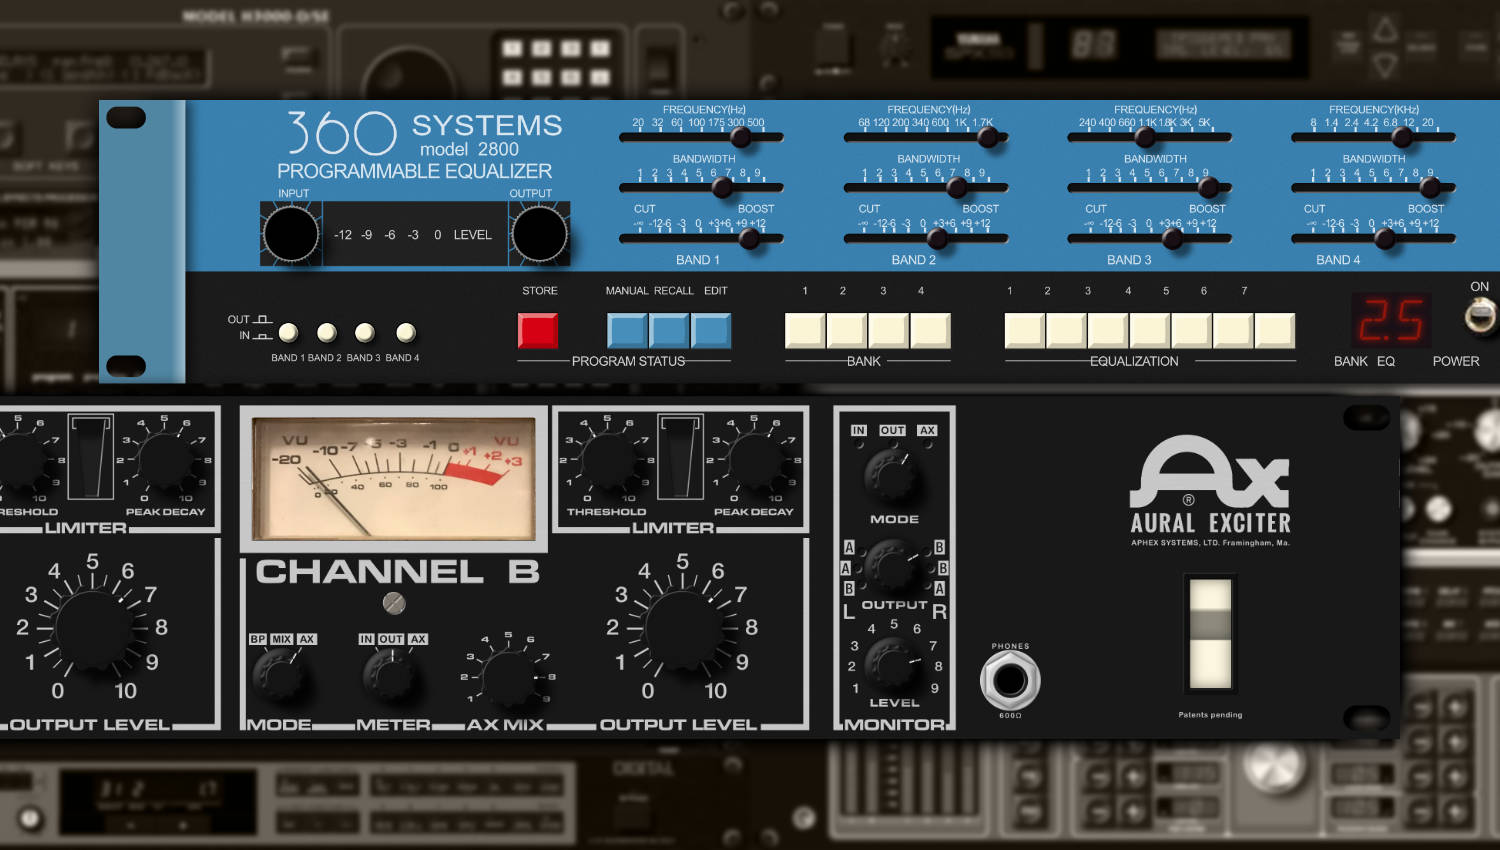 Aphex Aural Exciter & 360 Systems EQ